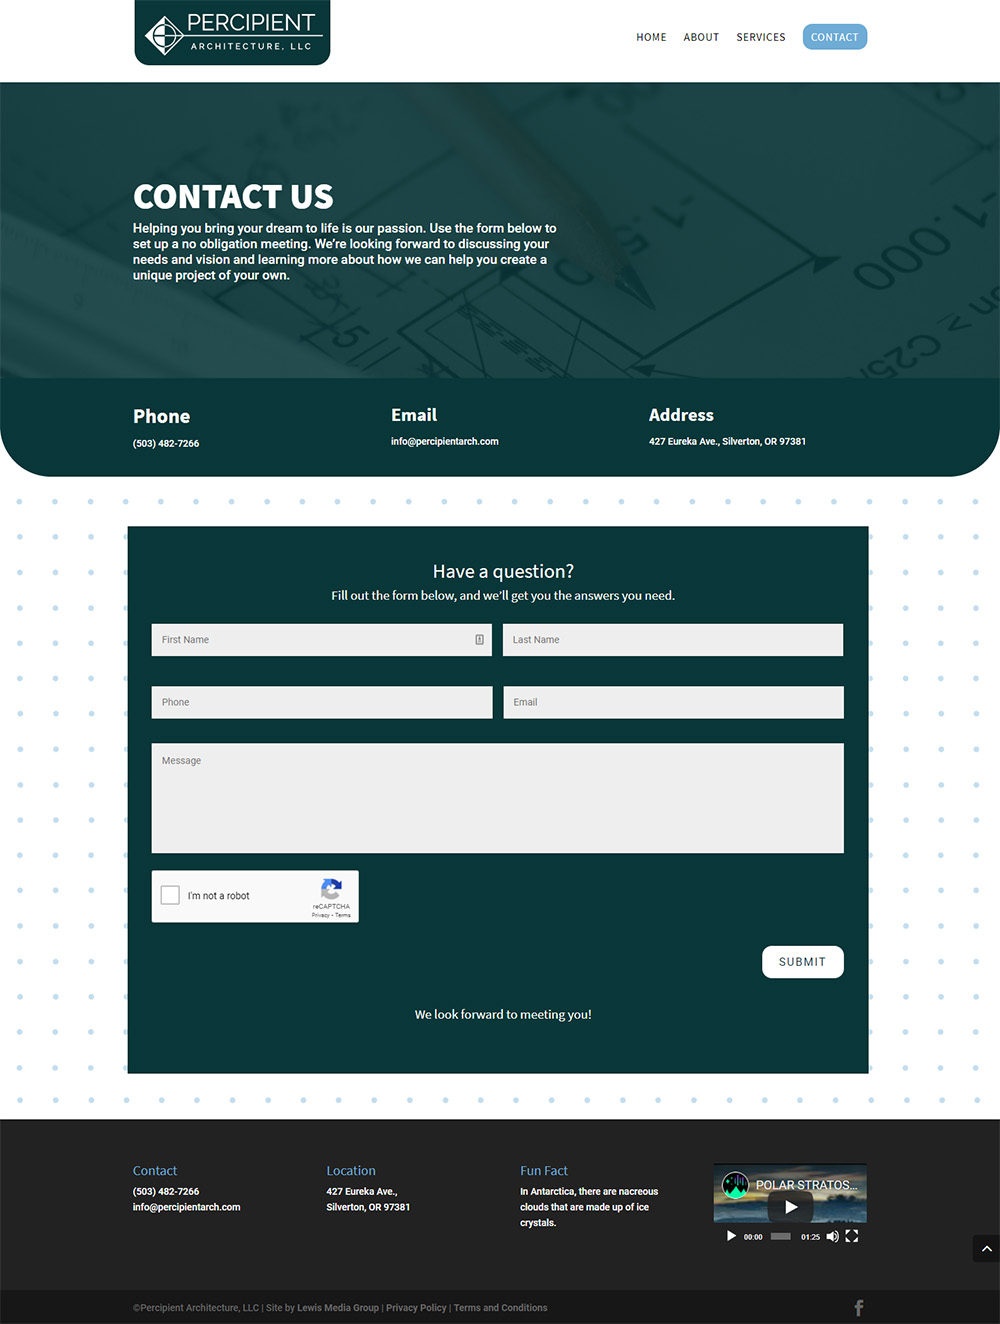 Percipient Architecture Contact page after redesign